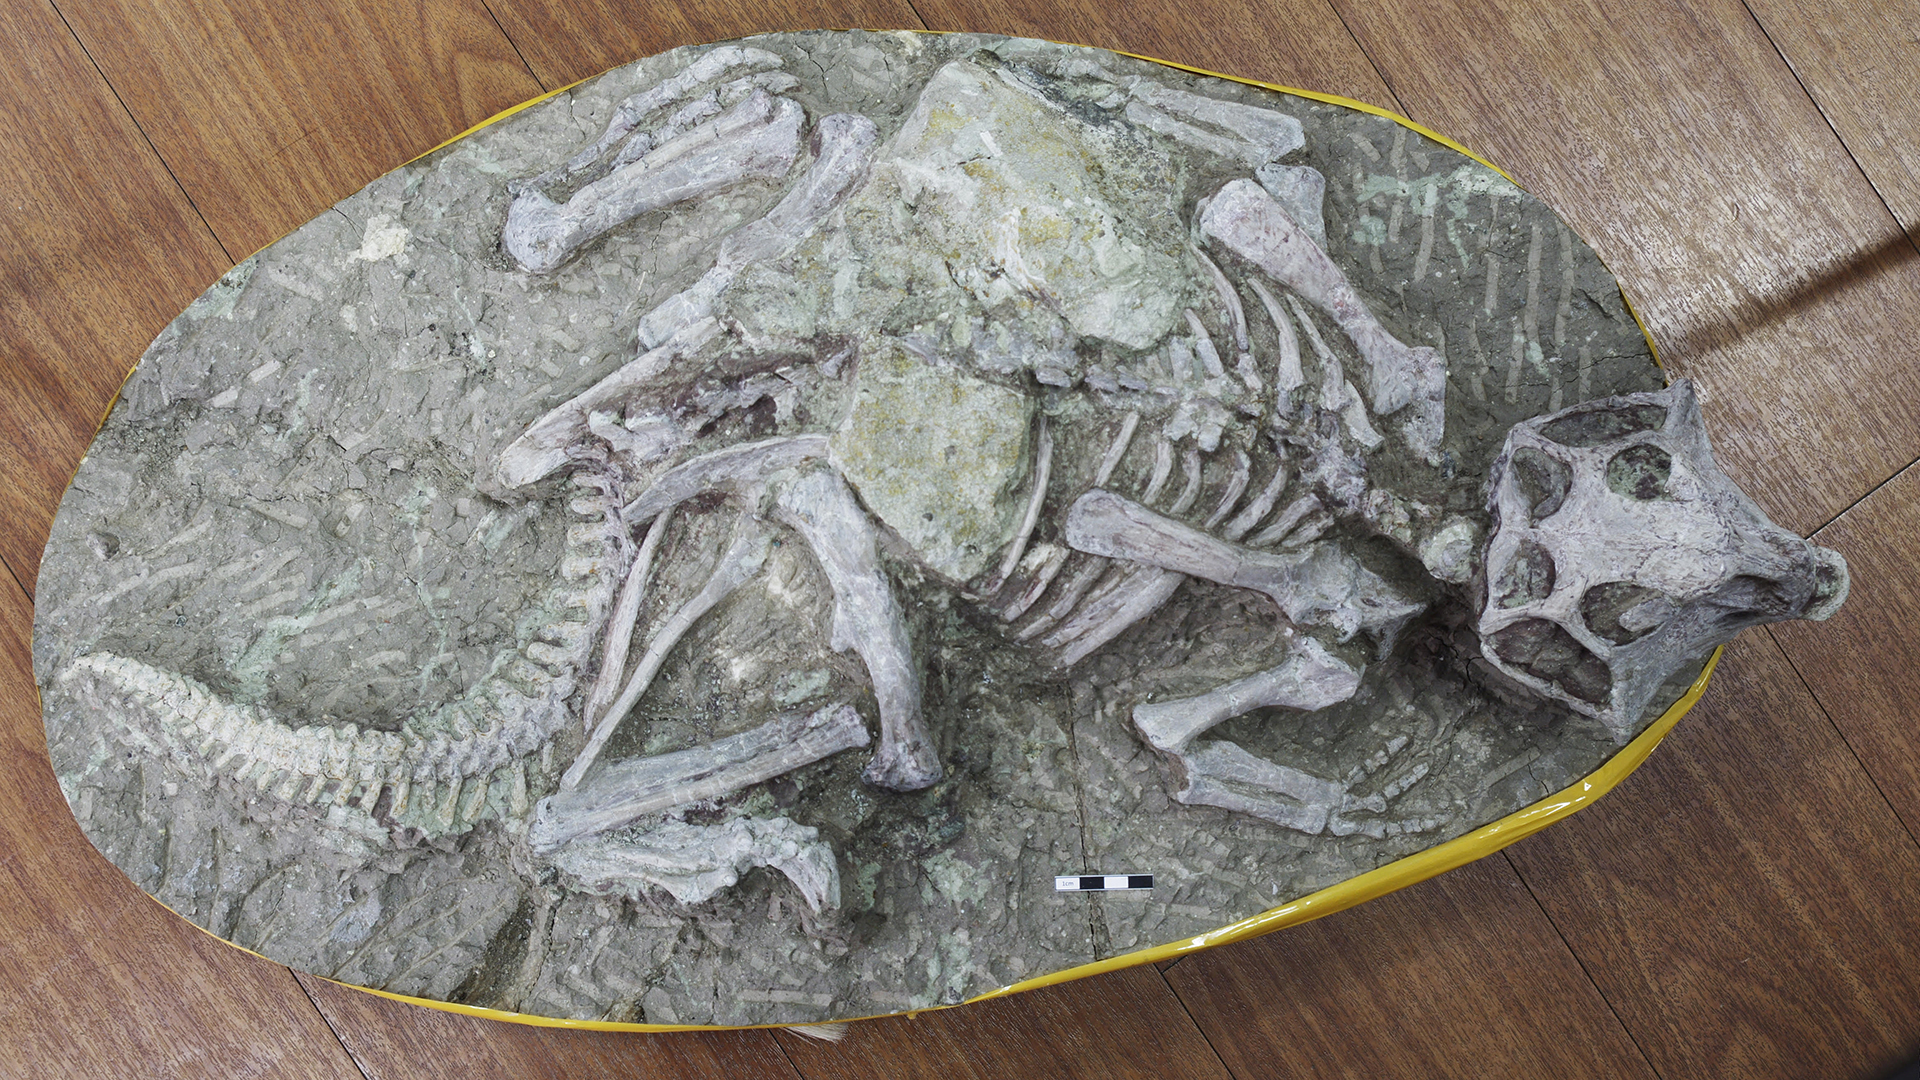 Stunningly preserved 'Cretaceous Pompeii' fossils may not be what they seem